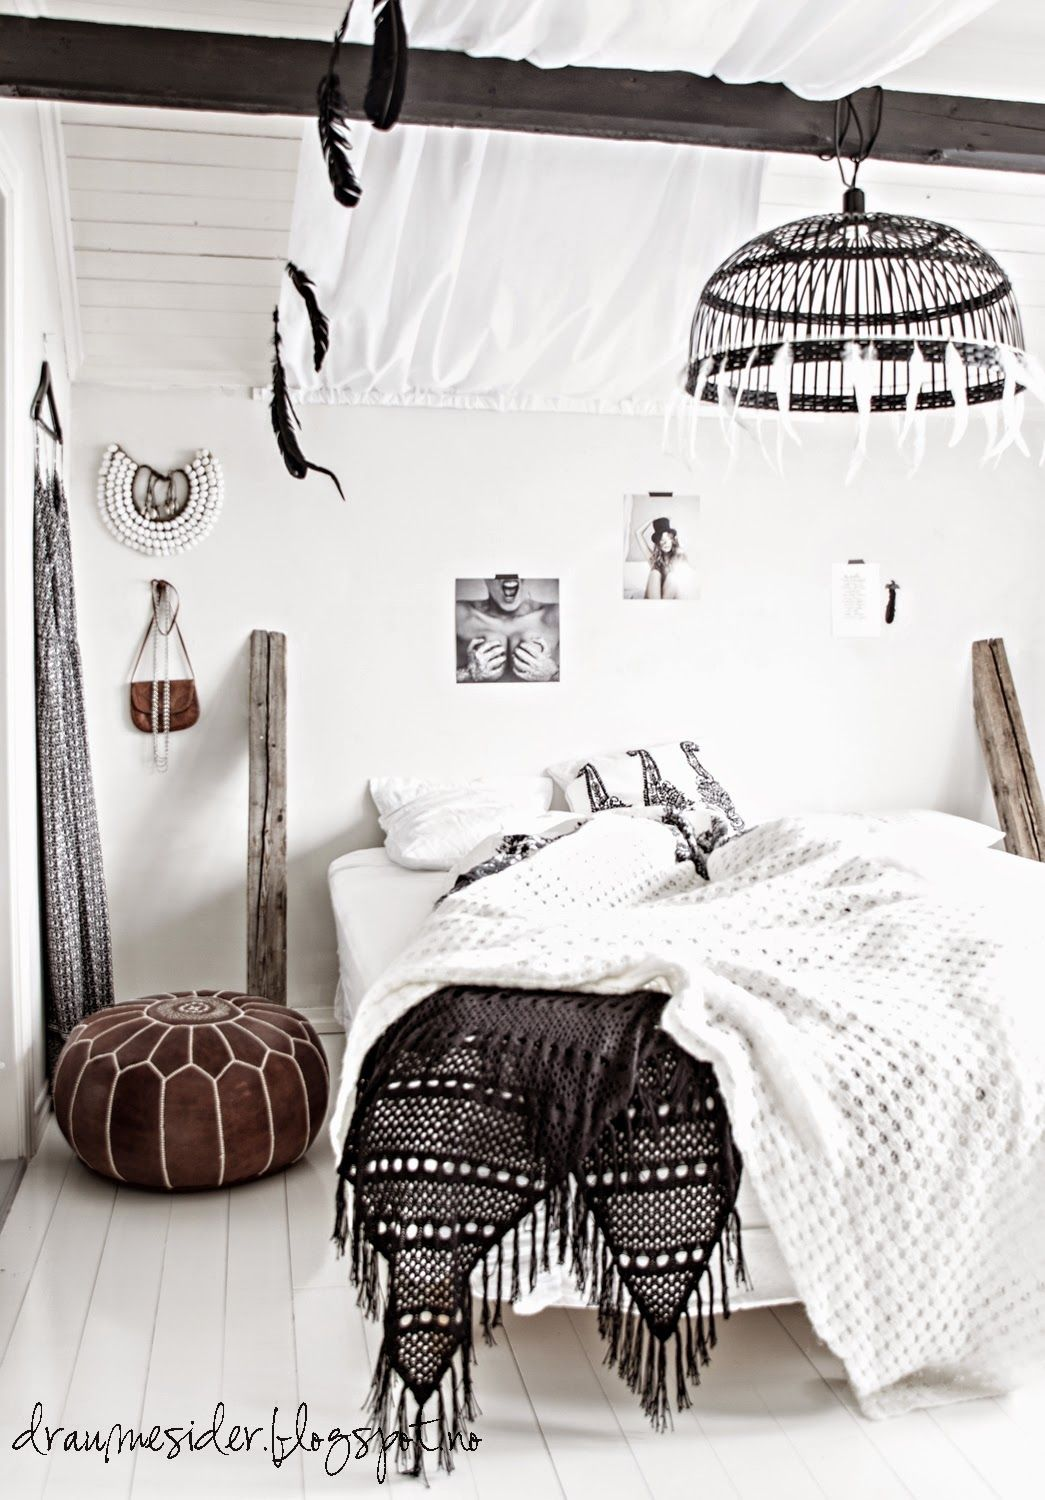 Best B O H O Bedroom Elin Sine Draumesider ♥ Bedrooms Boho And Monochrome Bedroom 400 x 300